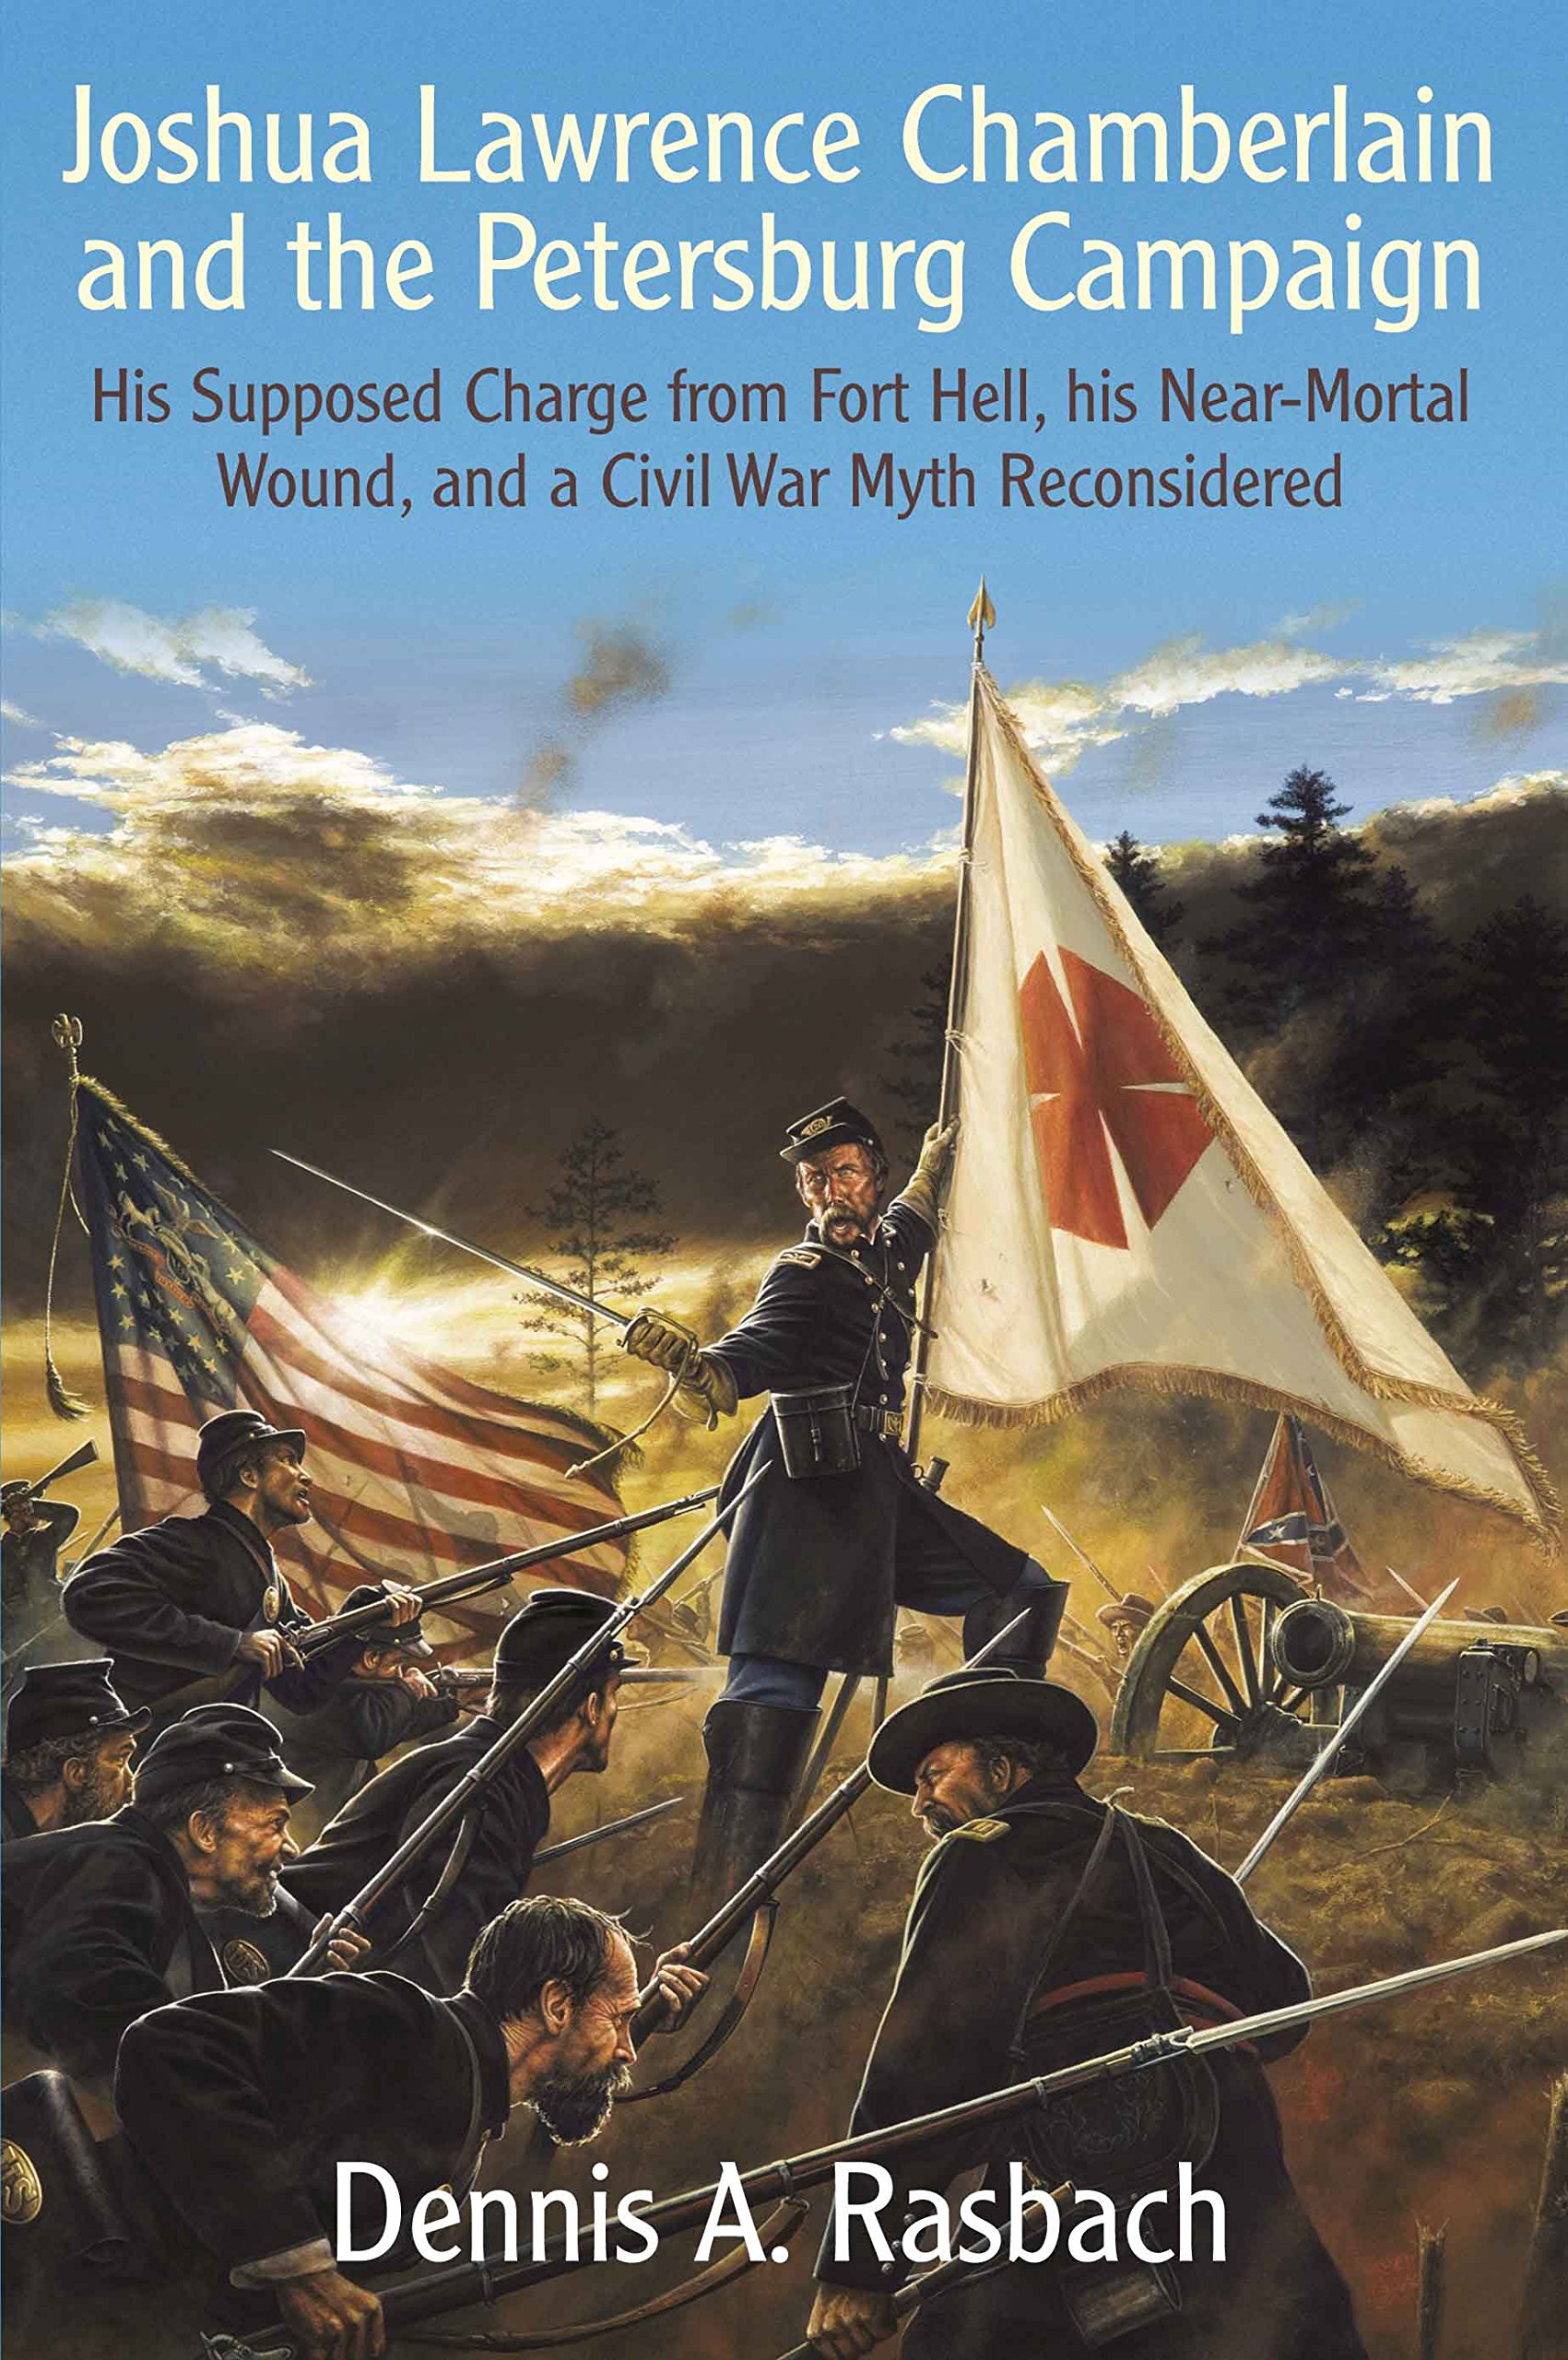 Download Joshua Lawrence Chamberlain and the Petersburg Campaign: His Supposed Charge from Fort Hell, his Near-Mortal Wound, and a Civil War Myth Reconsidered pdf